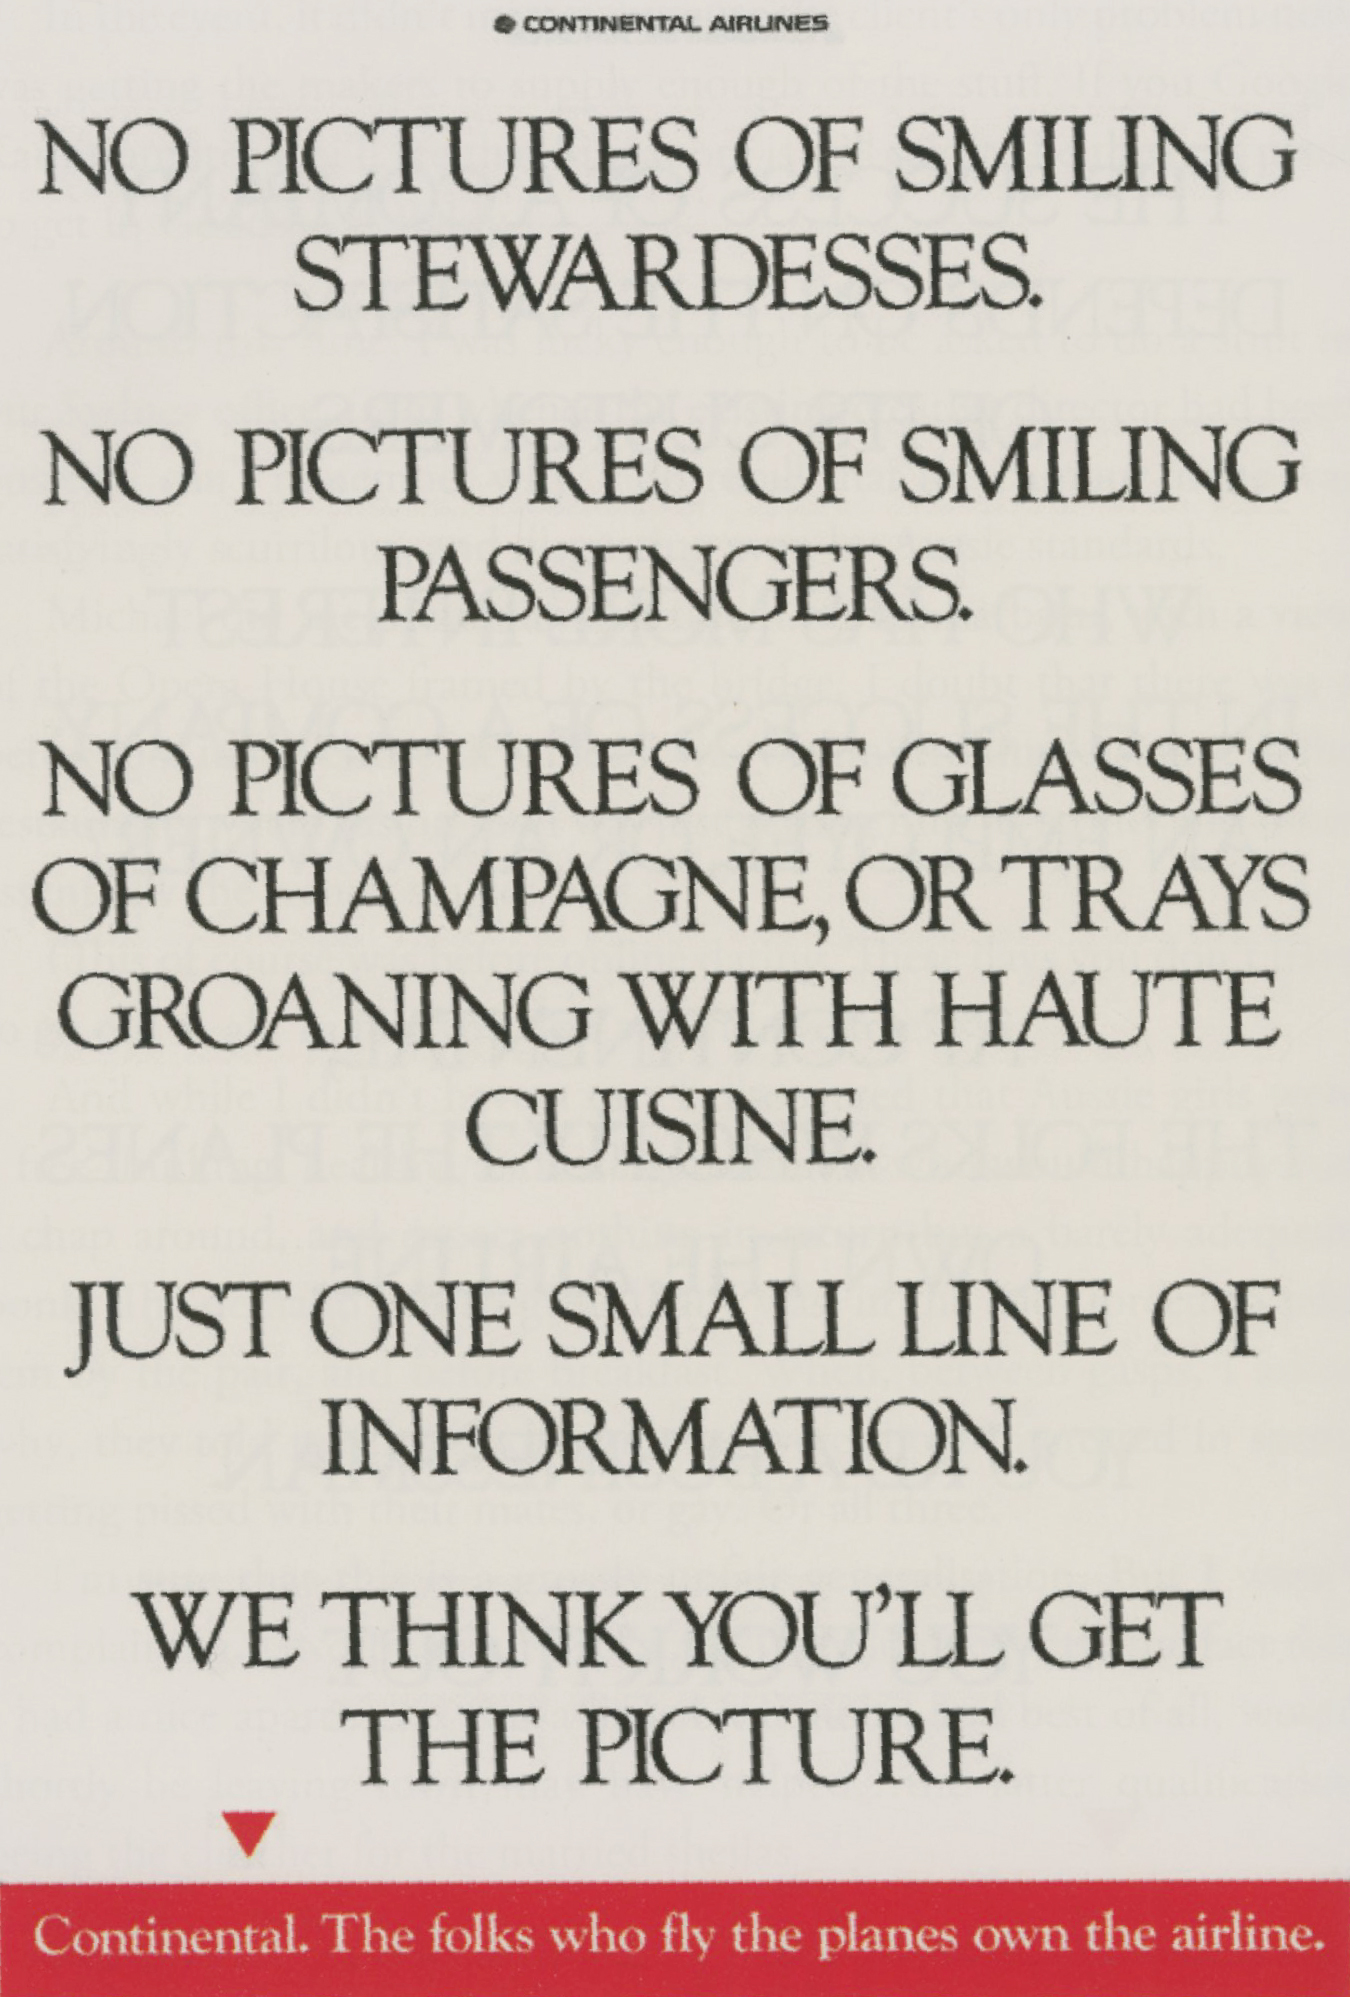 'No Pictures' Continental Airlines, Neil French, The Ball Partnership-01.jpg